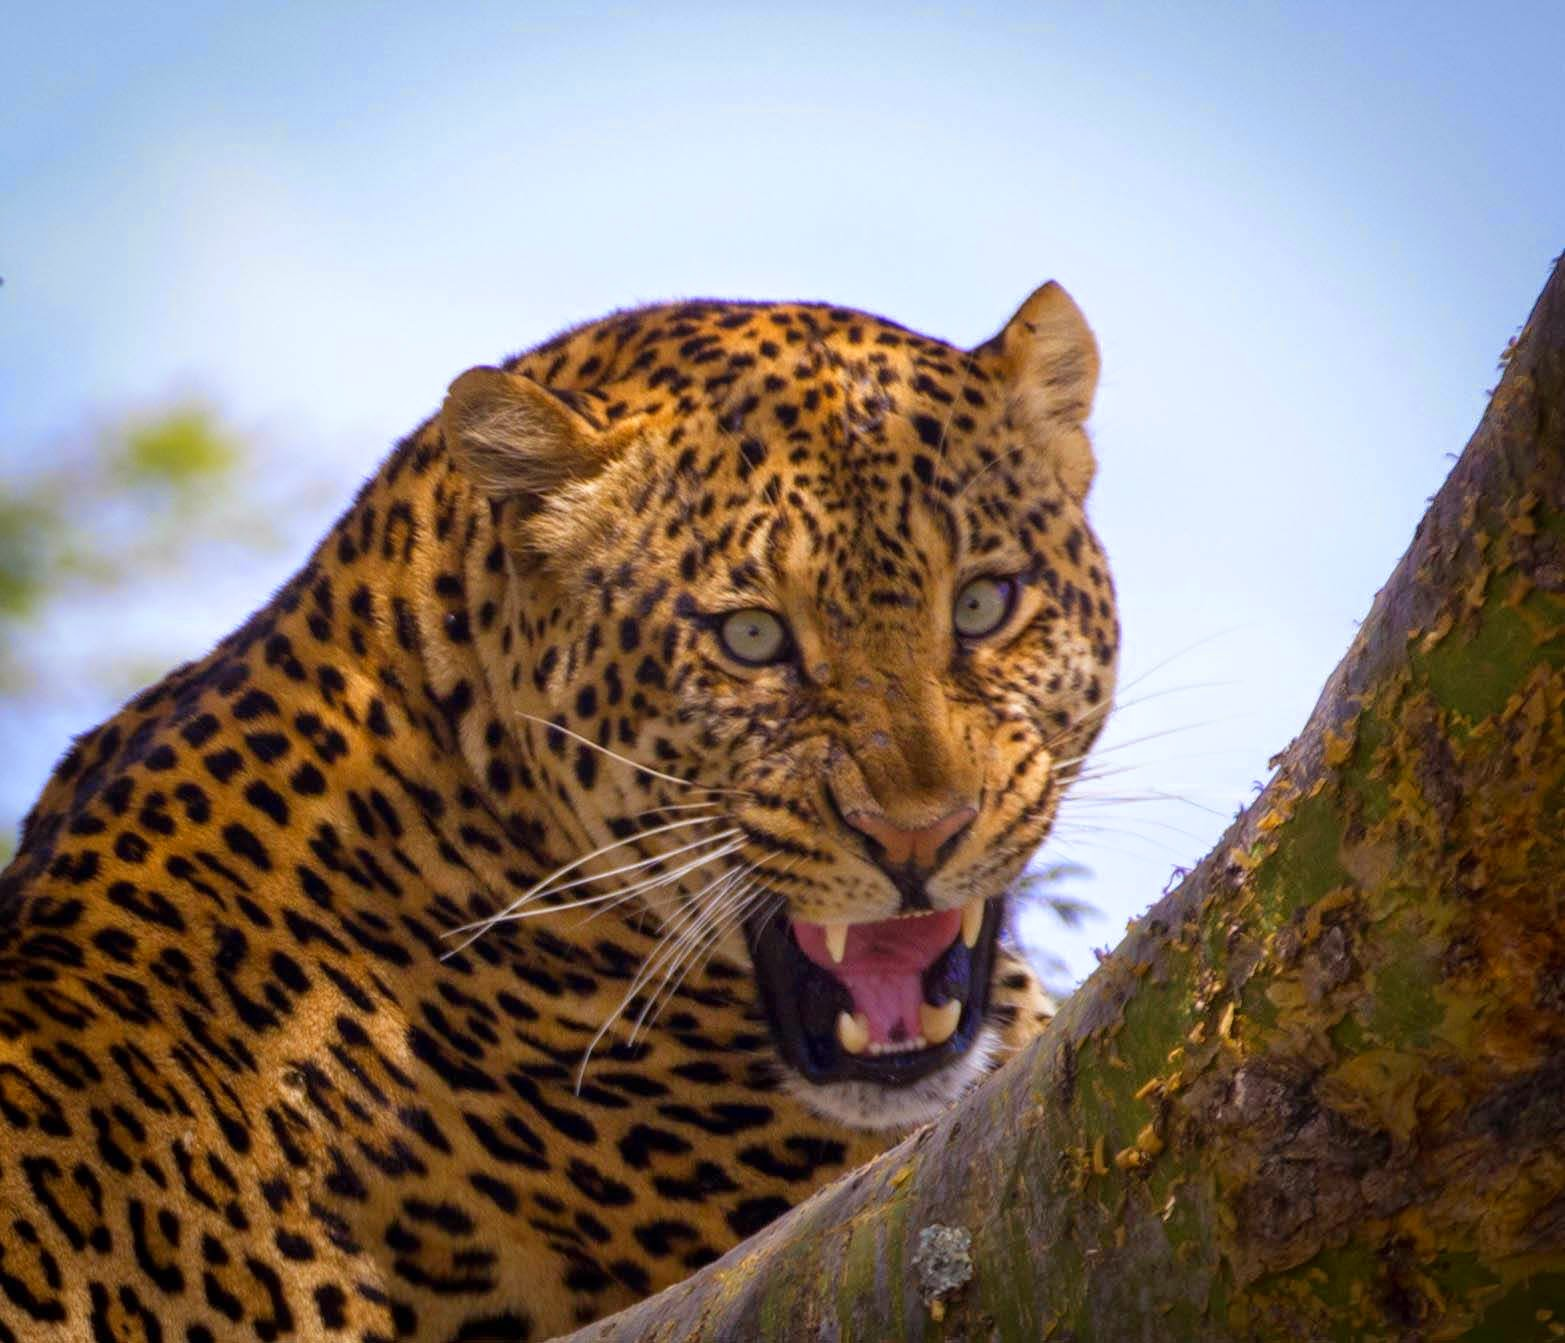 Leopard Growl: Istoria Ministries Blog: The Eye Of The Leopard And The